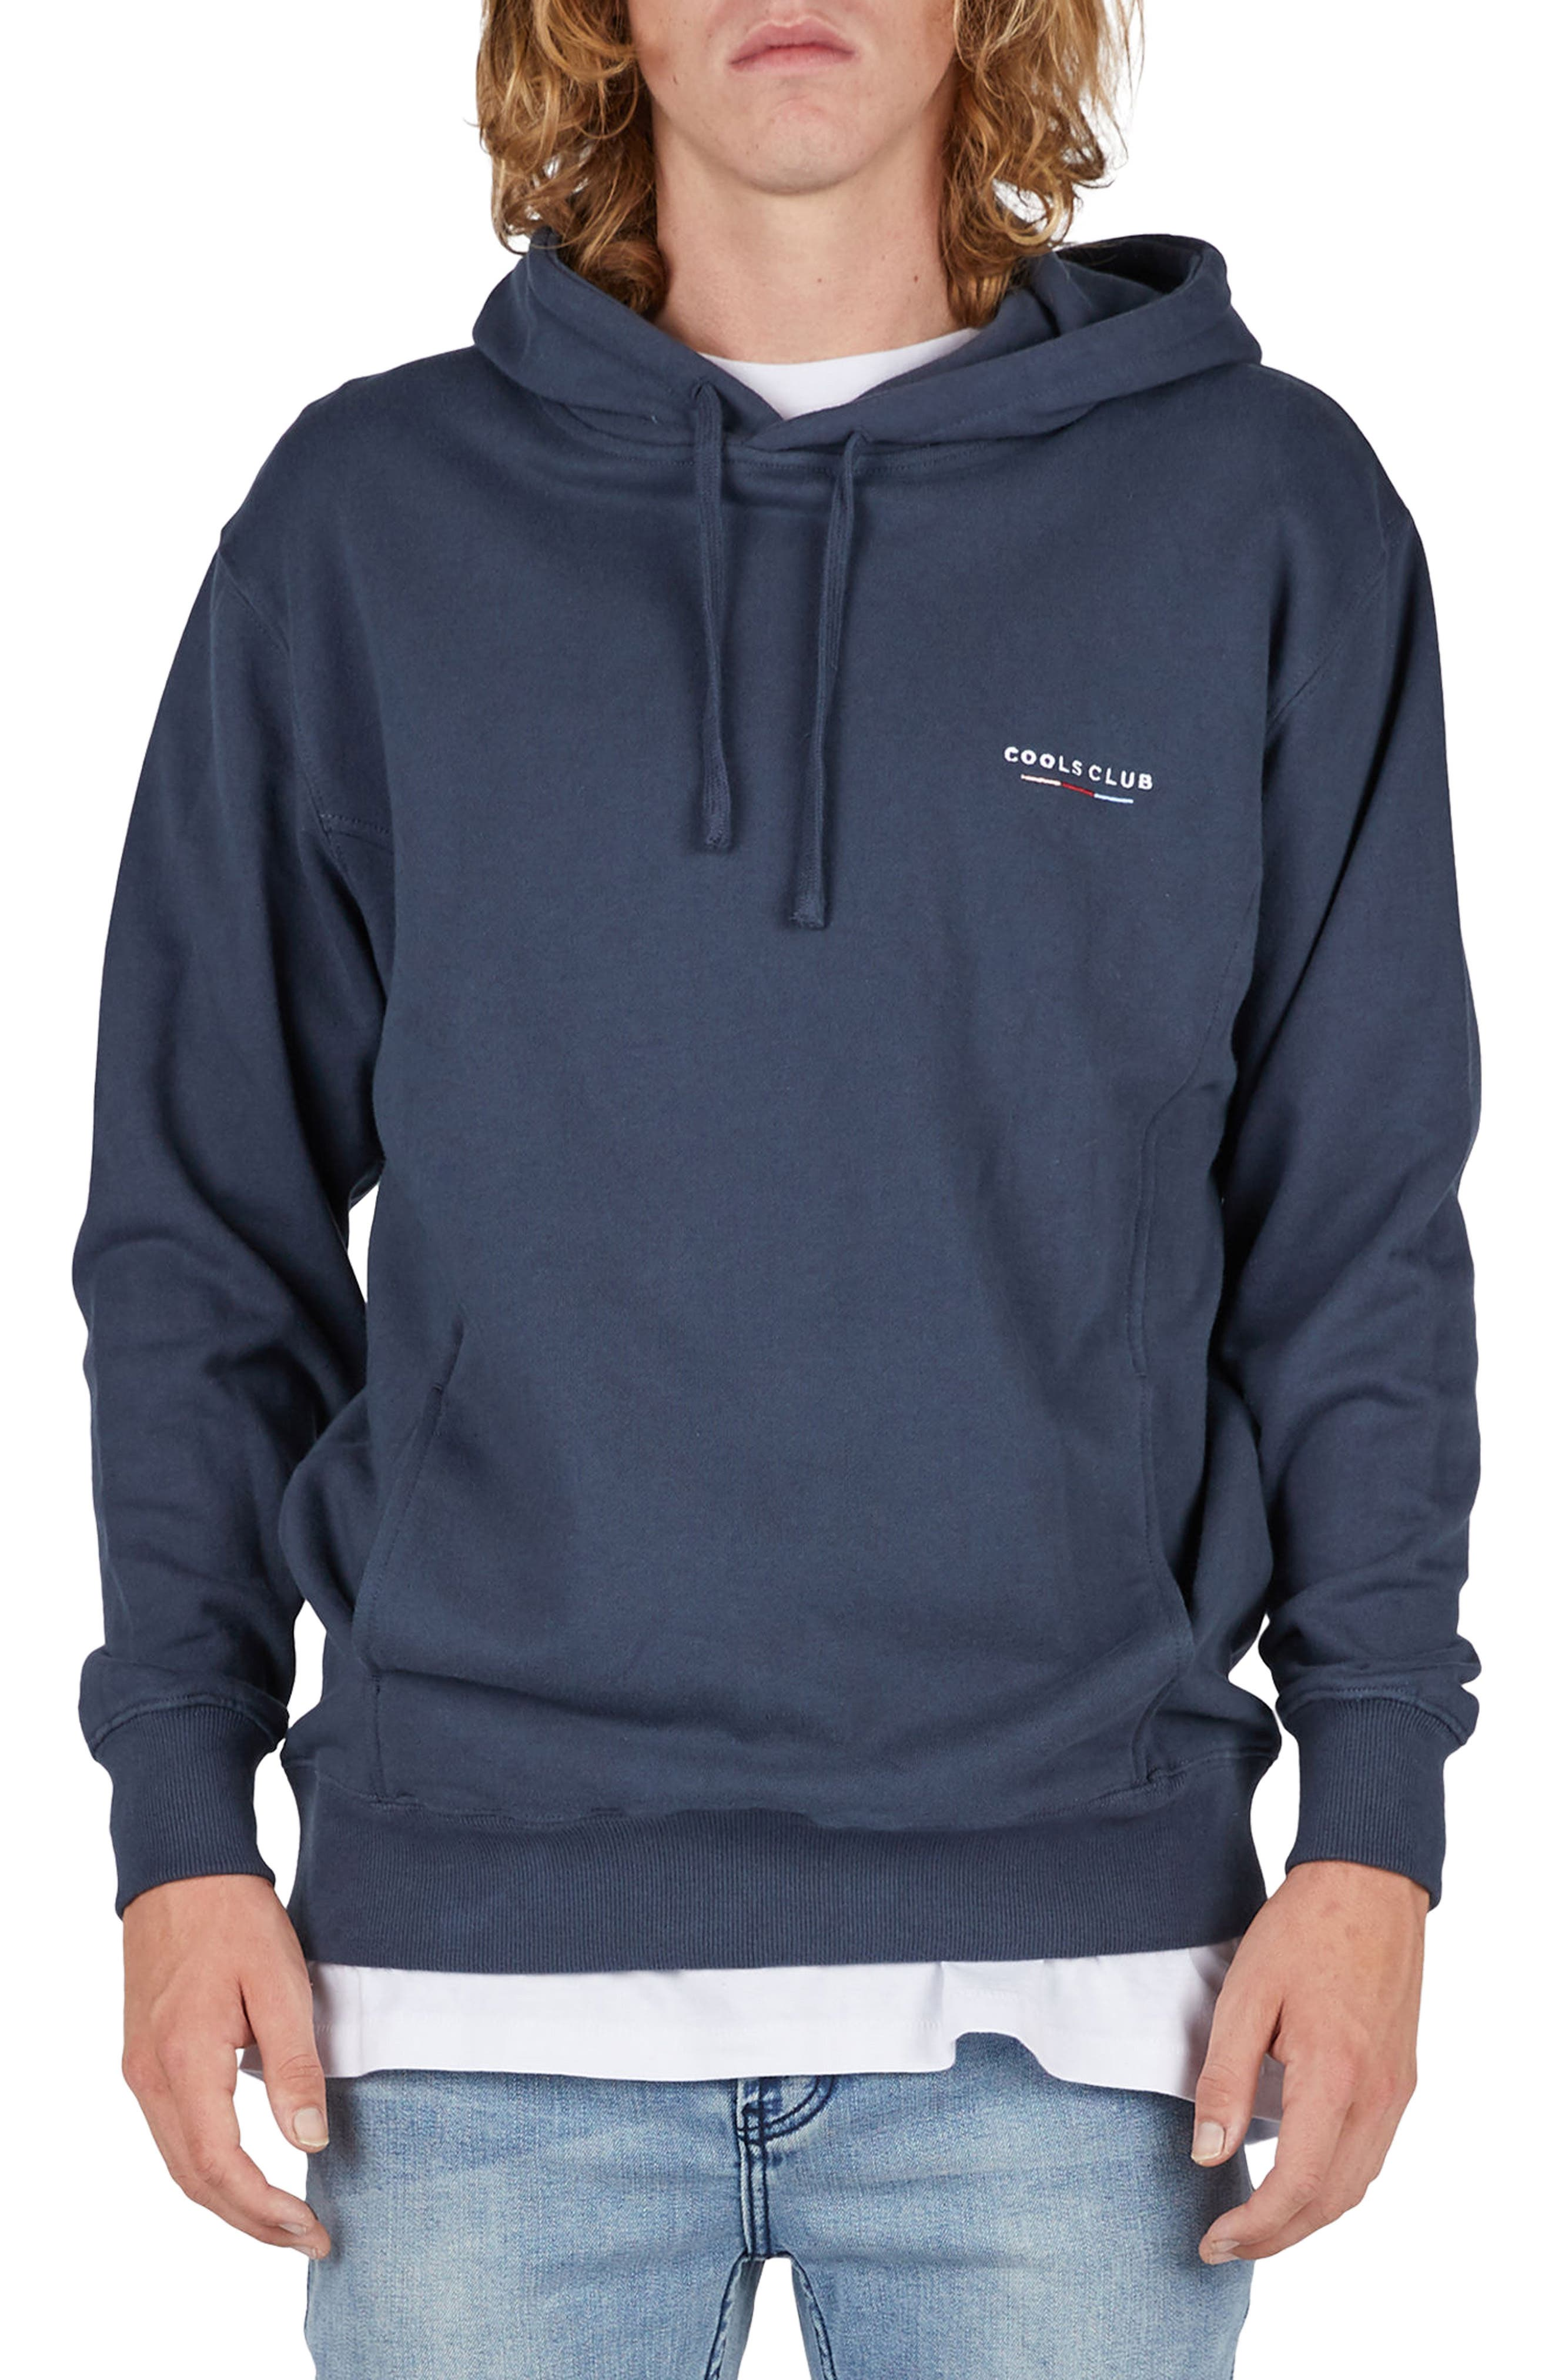 Cools Club Hoodie,                             Main thumbnail 1, color,                             411